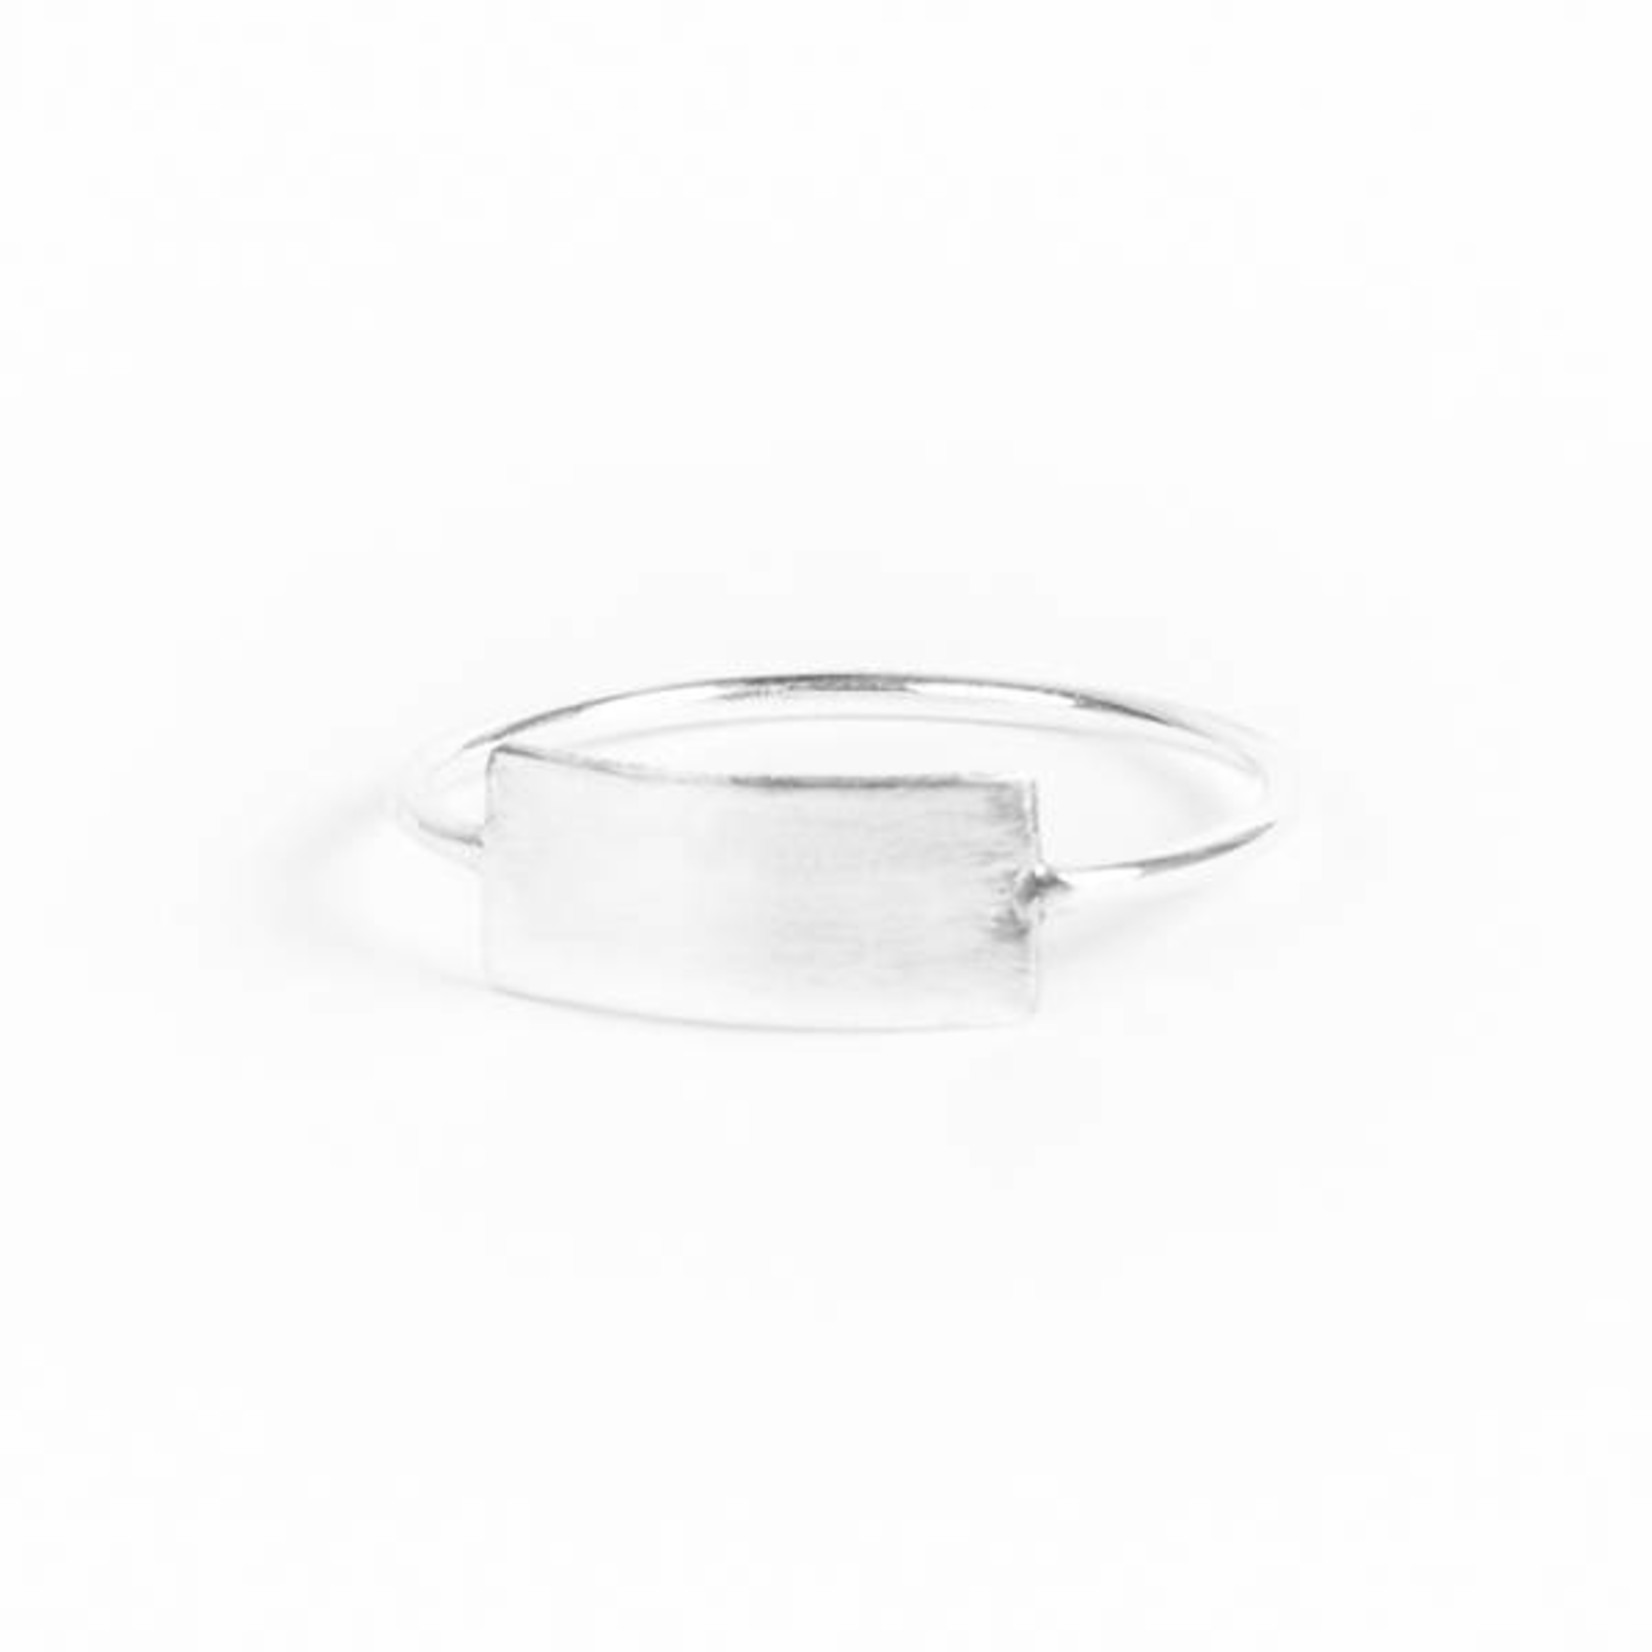 charlotte wooning ring geometry rectangle - goud